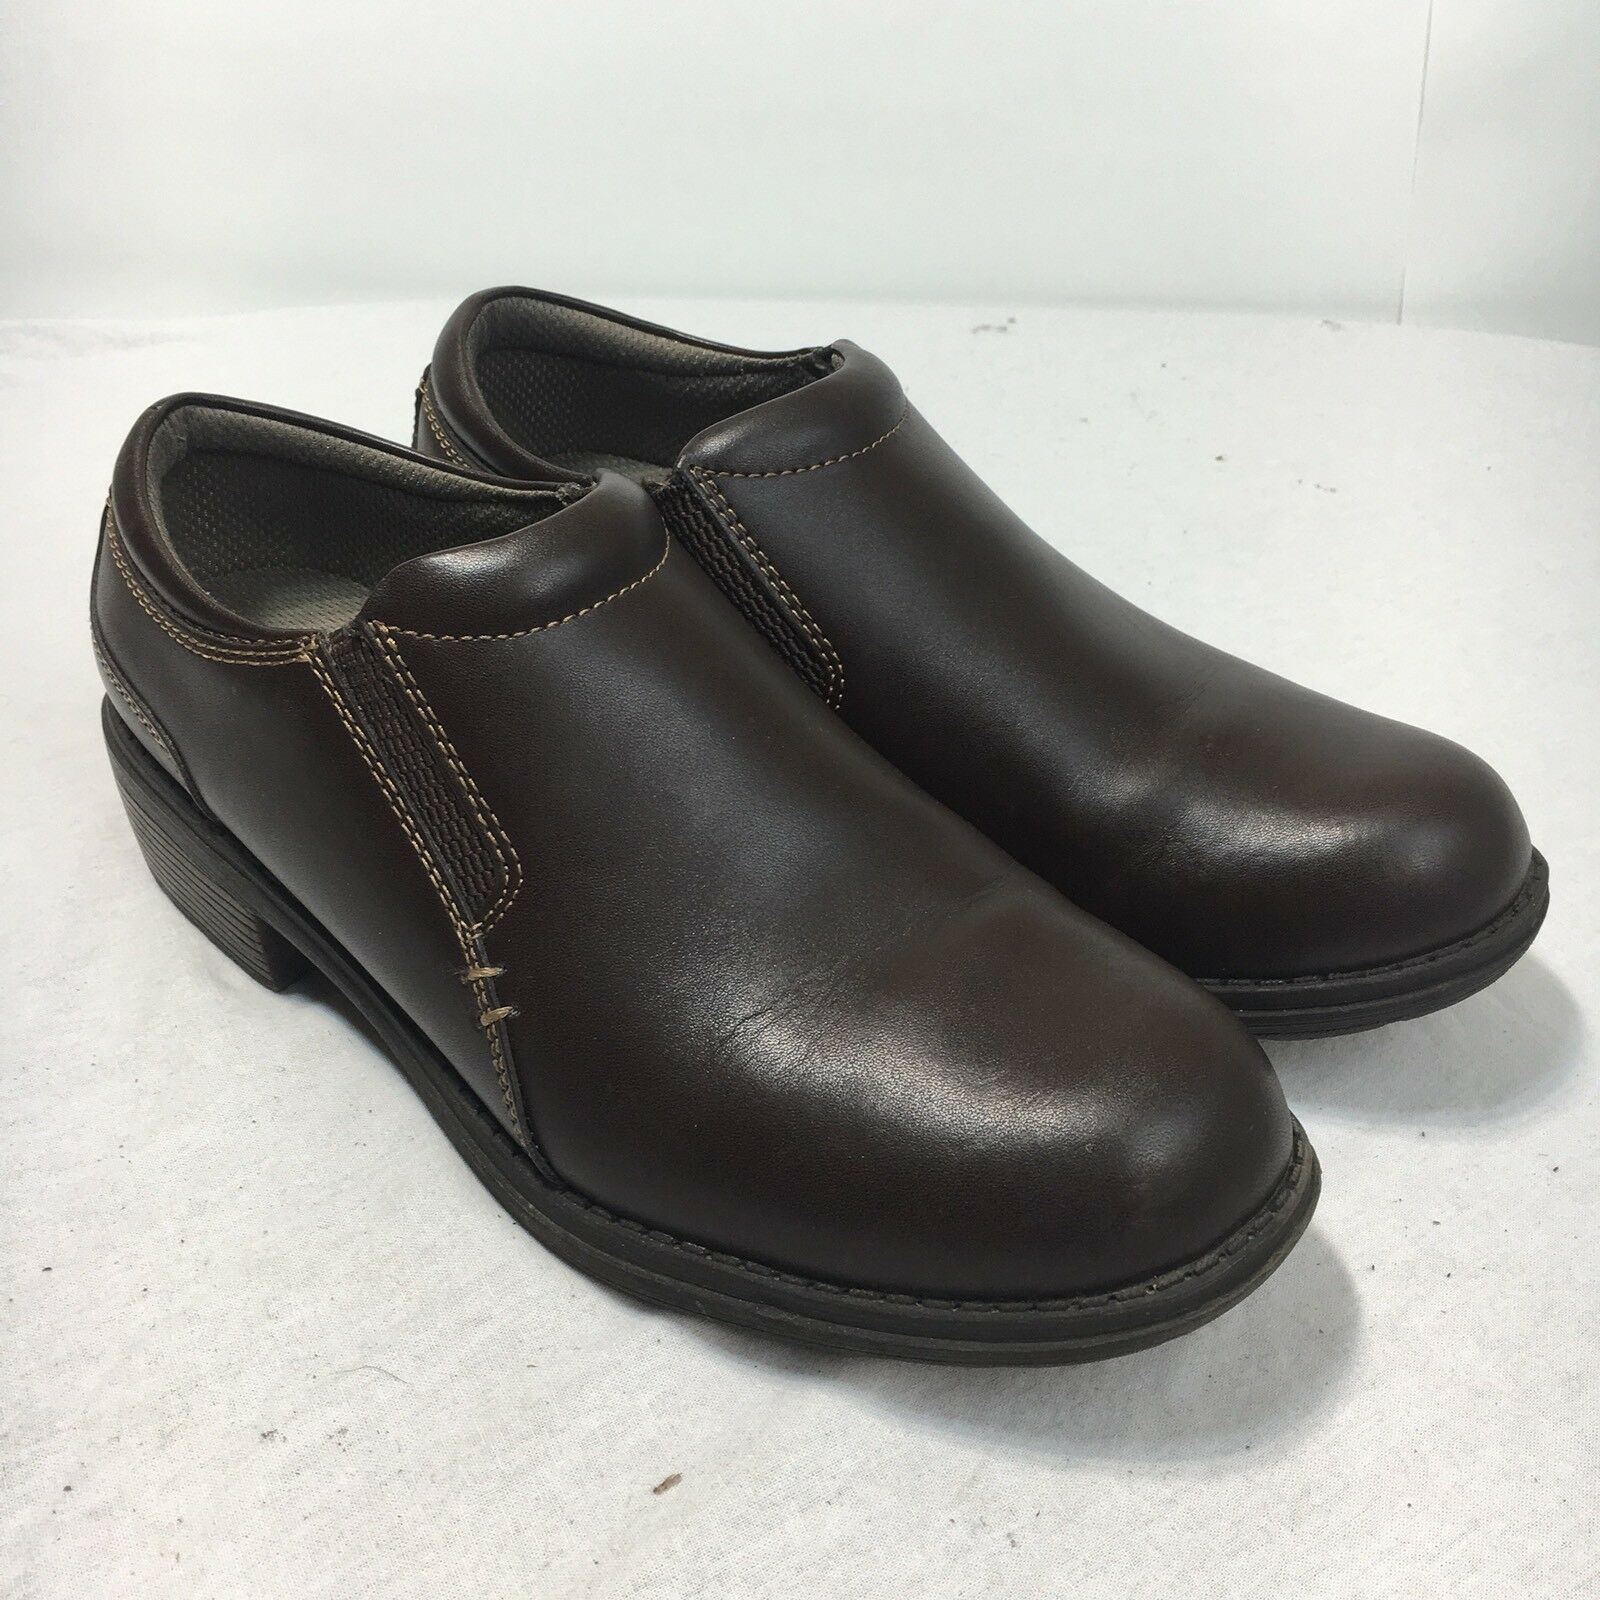 Eastland Double Deal Womens 10 Smooth Brown Leather Slip On Oxford Loafer shoes